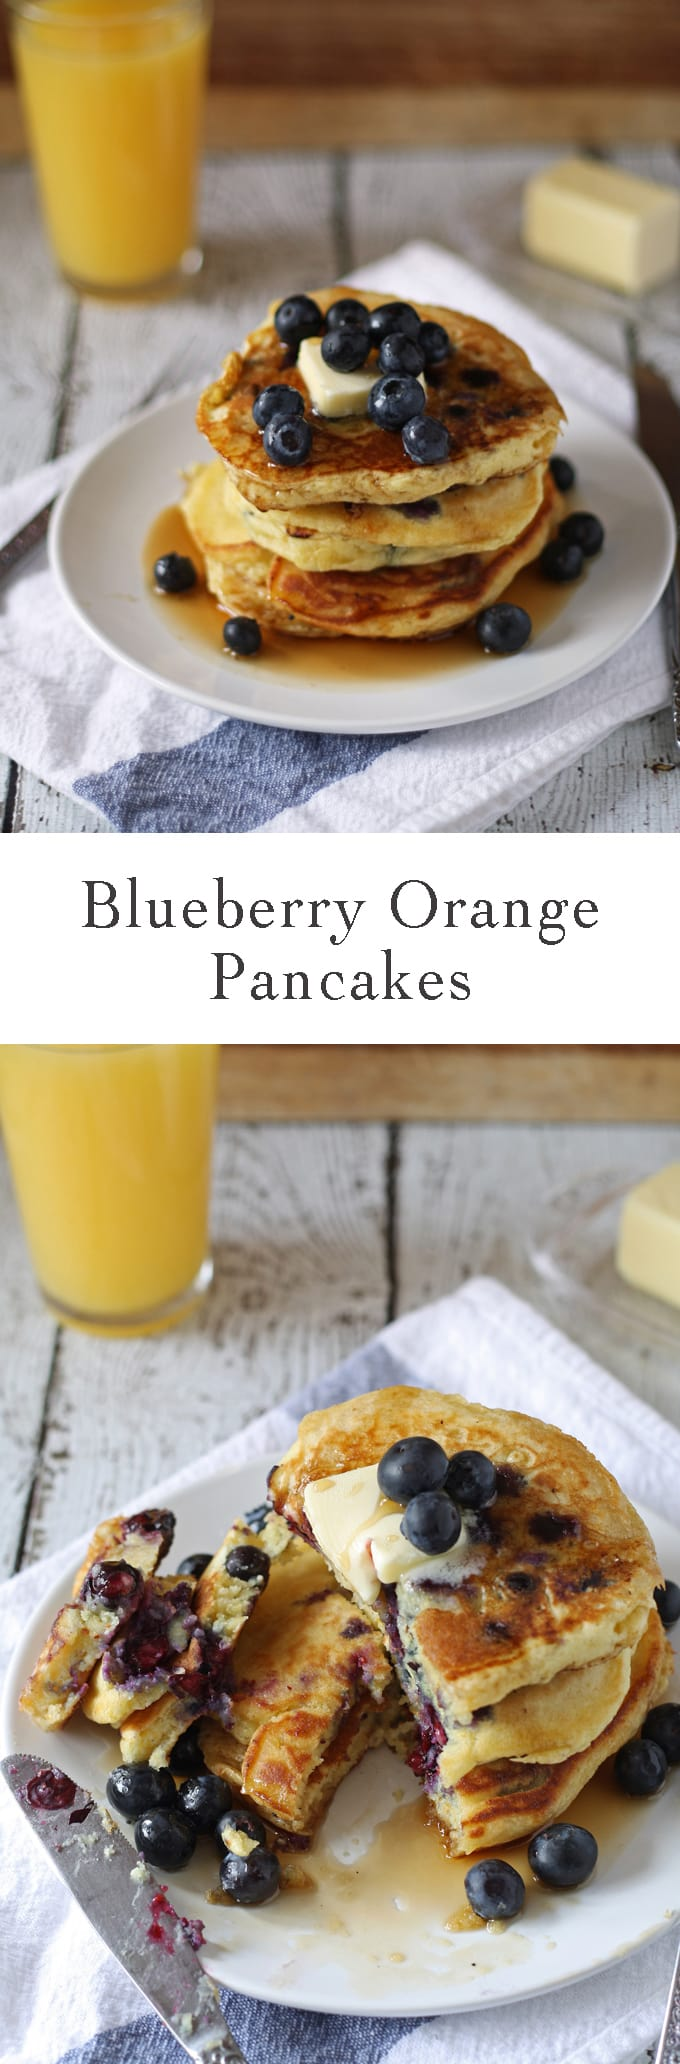 Blueberry Orange Pancakes | www.honeyandbirch.com | #breakfast